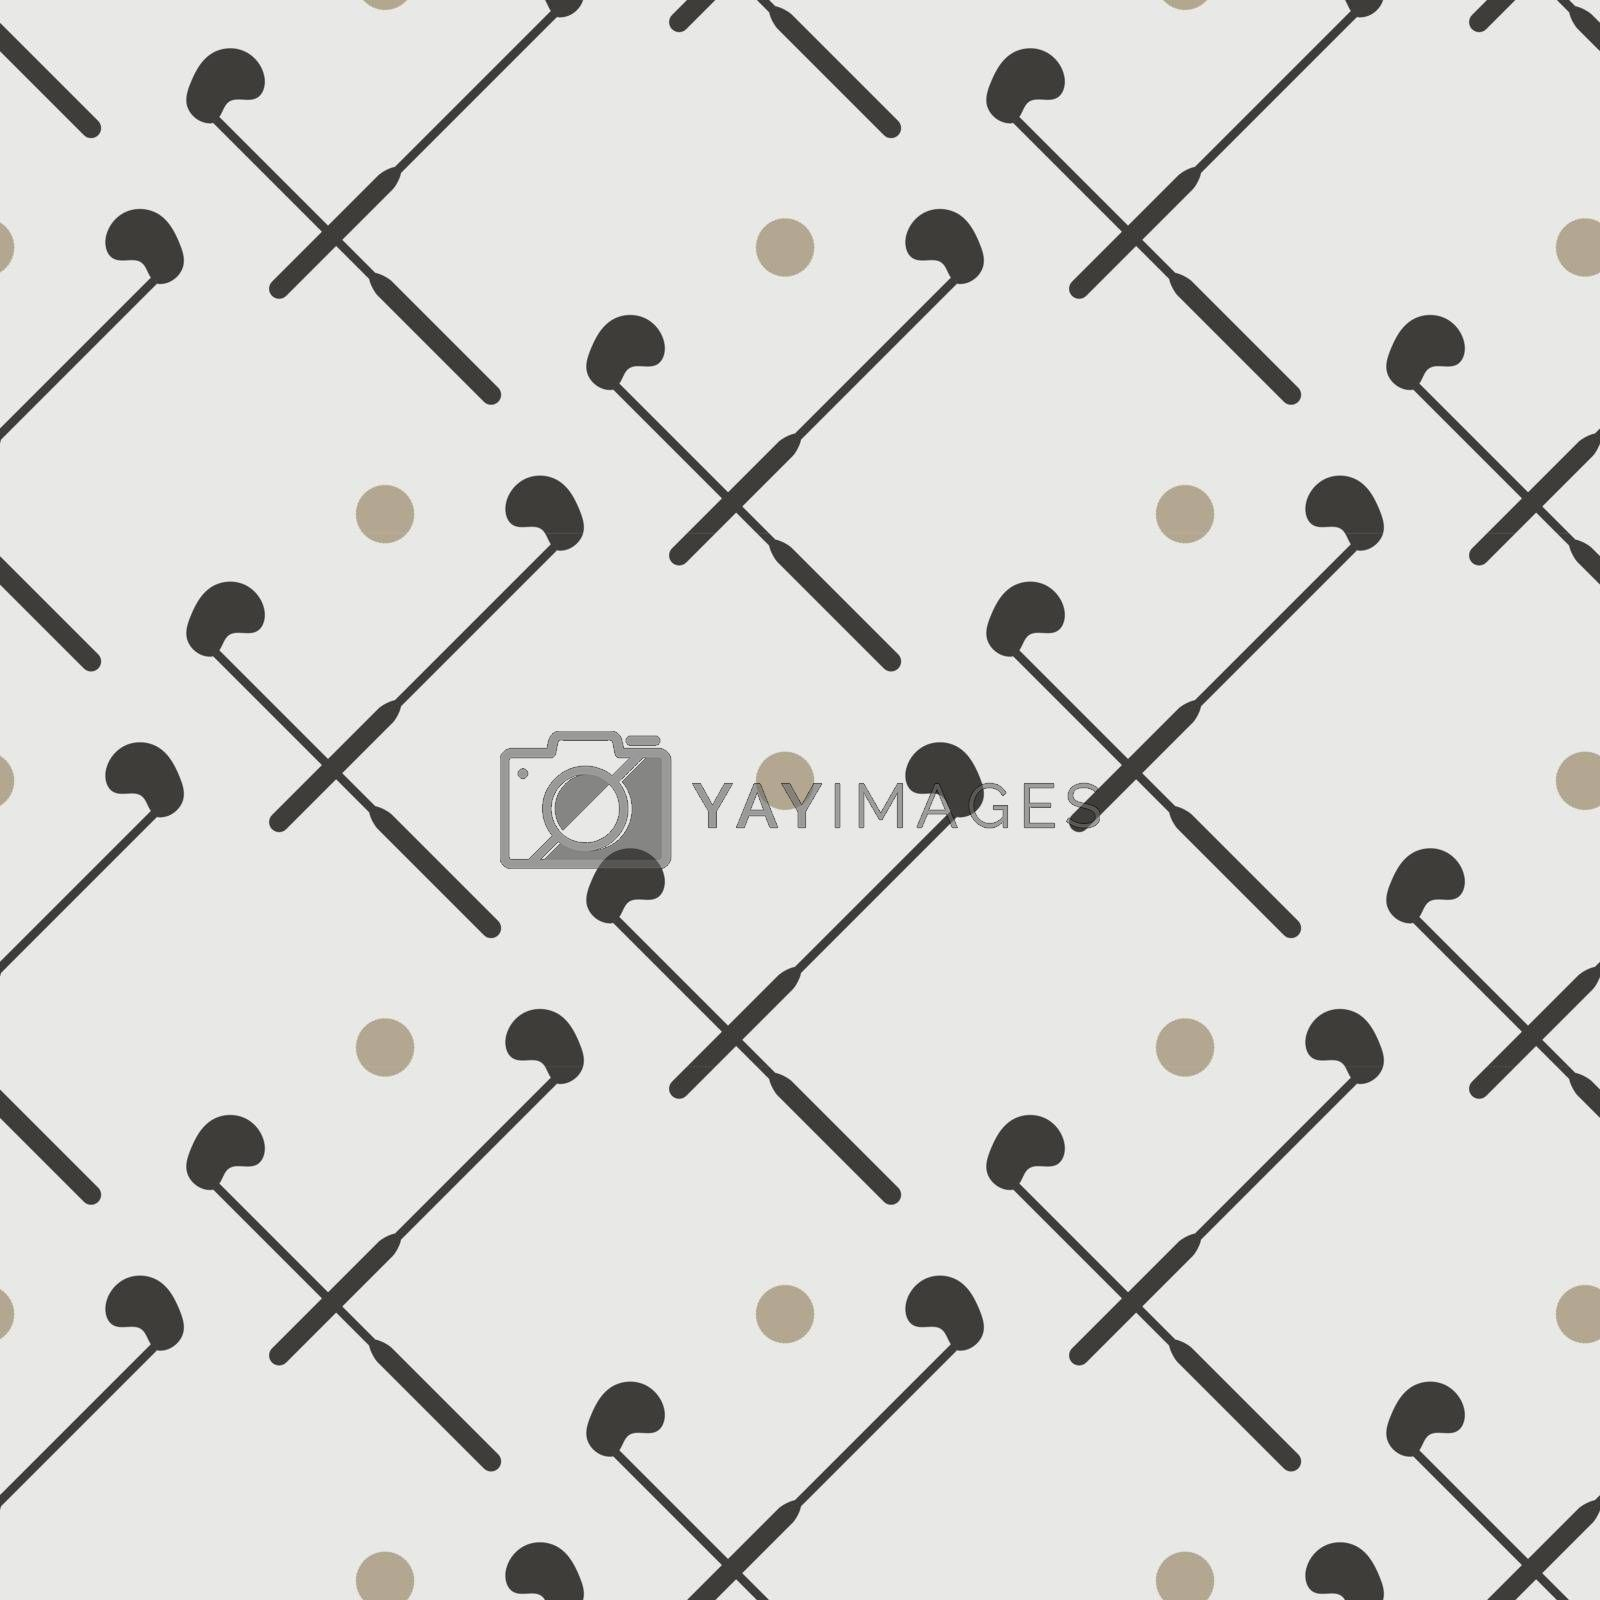 Colored golf clubs and balls seamless pattern